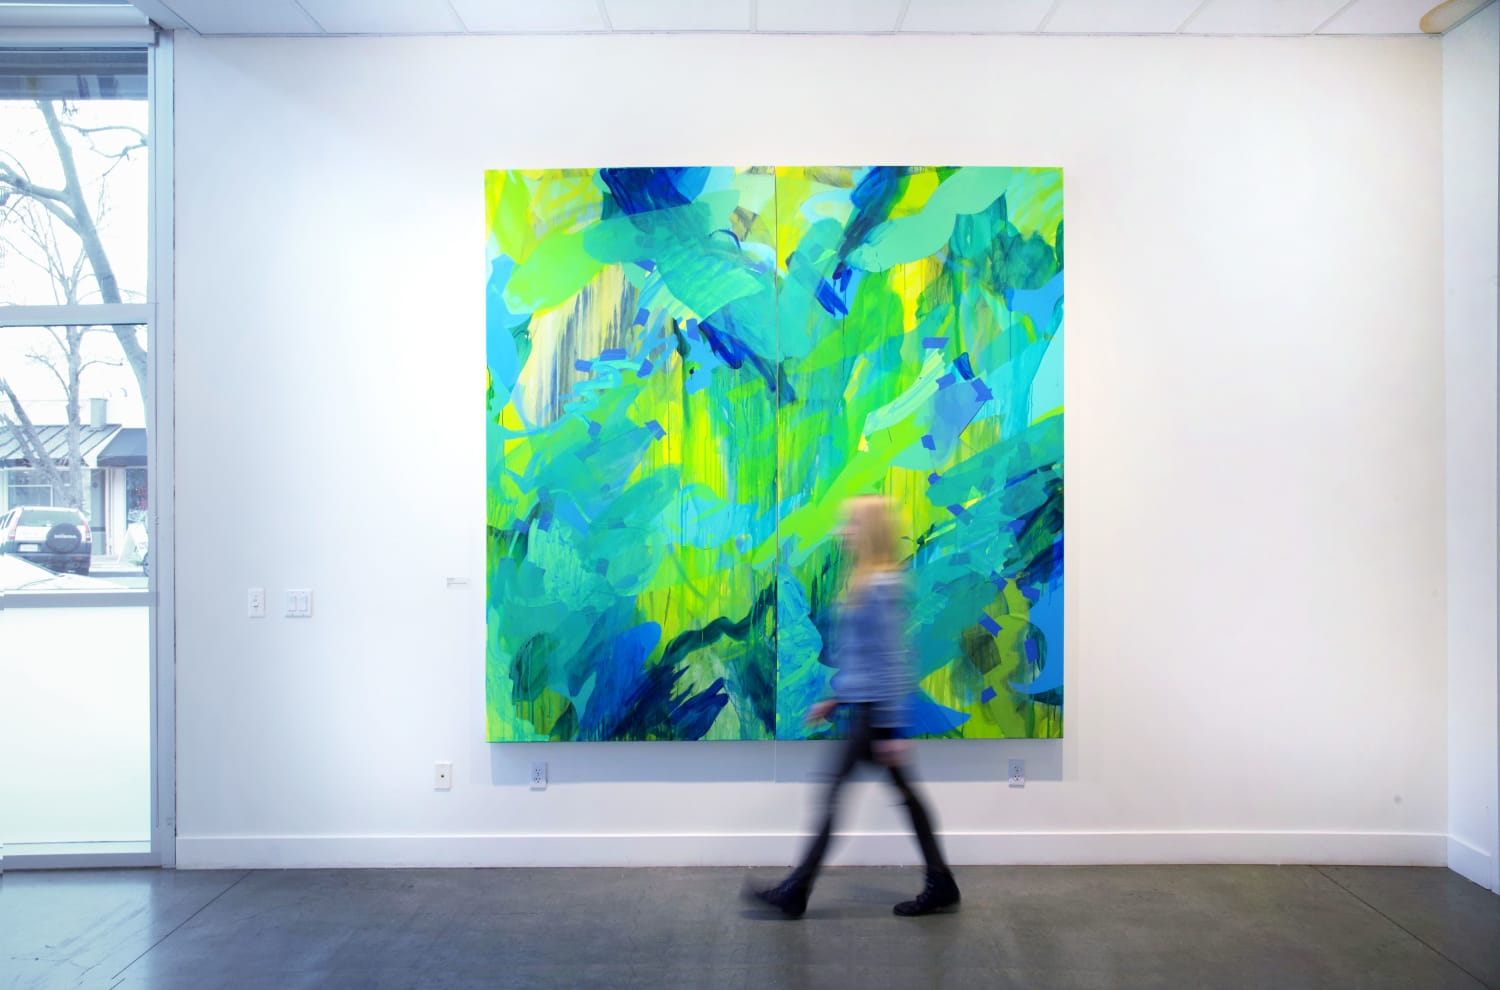 Neon green and yellow abstract diptych